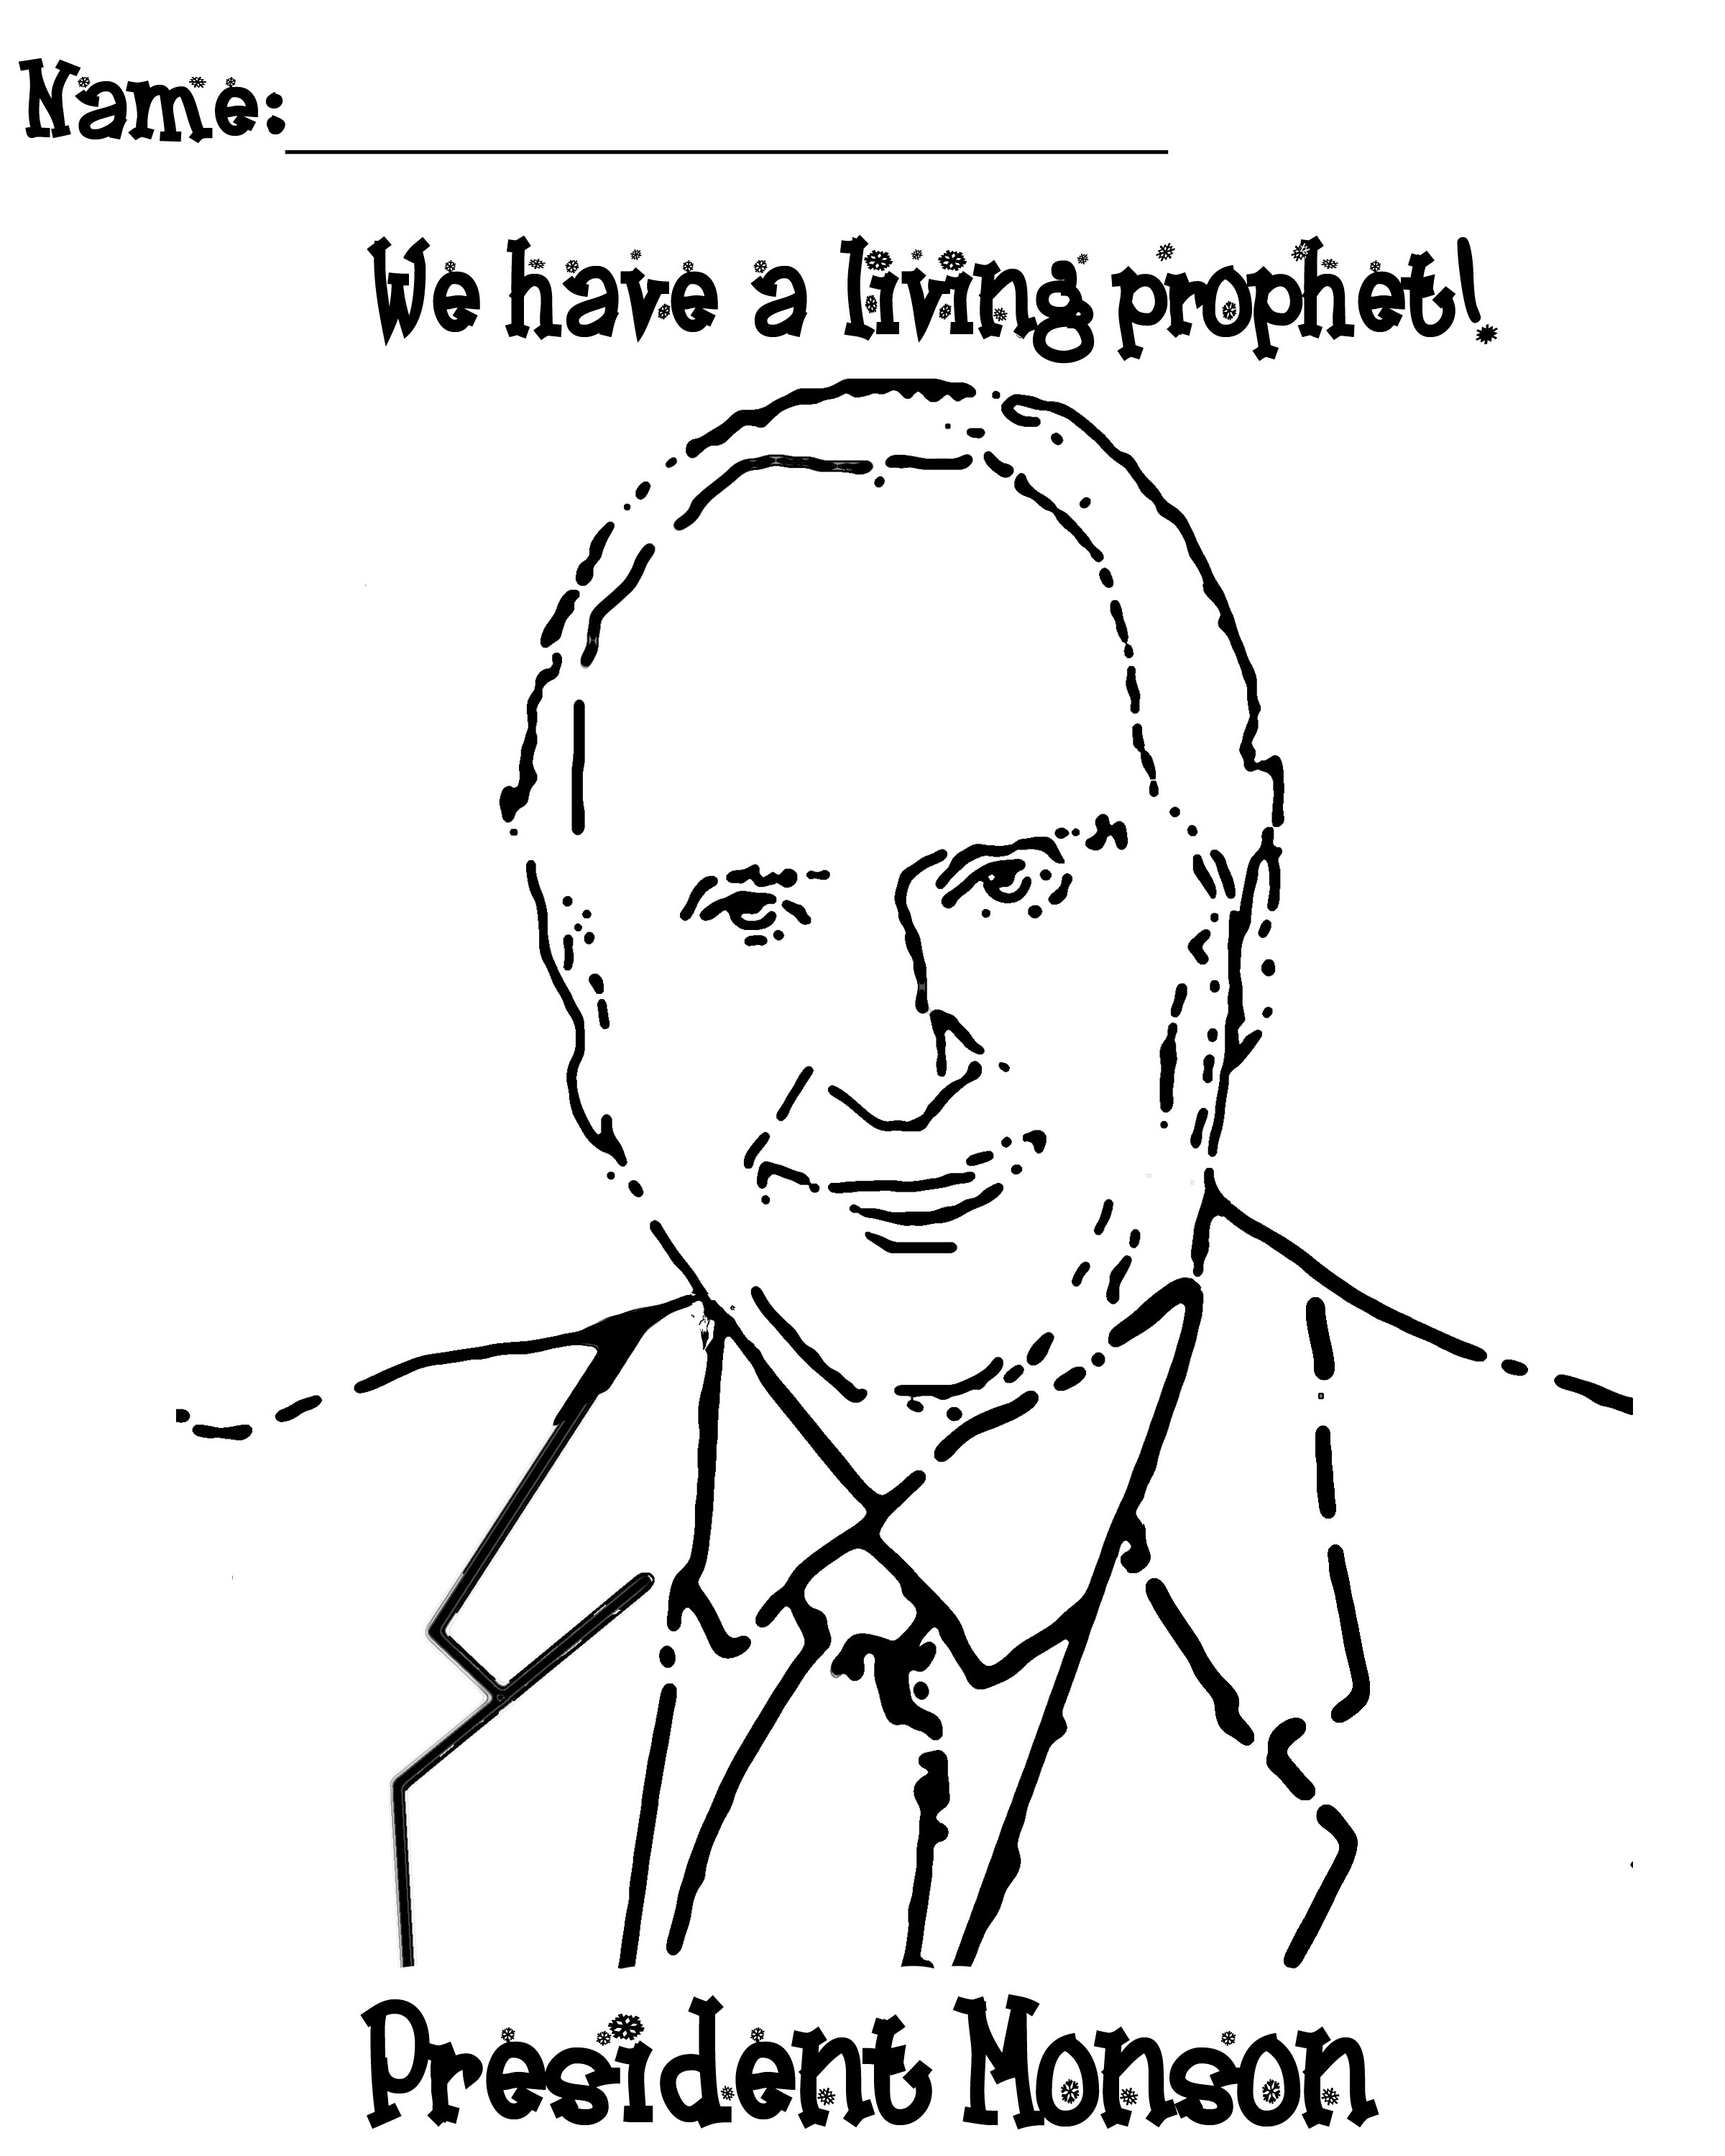 president monson coloring page president monson coloring page jenny smith 39 s lds ideas